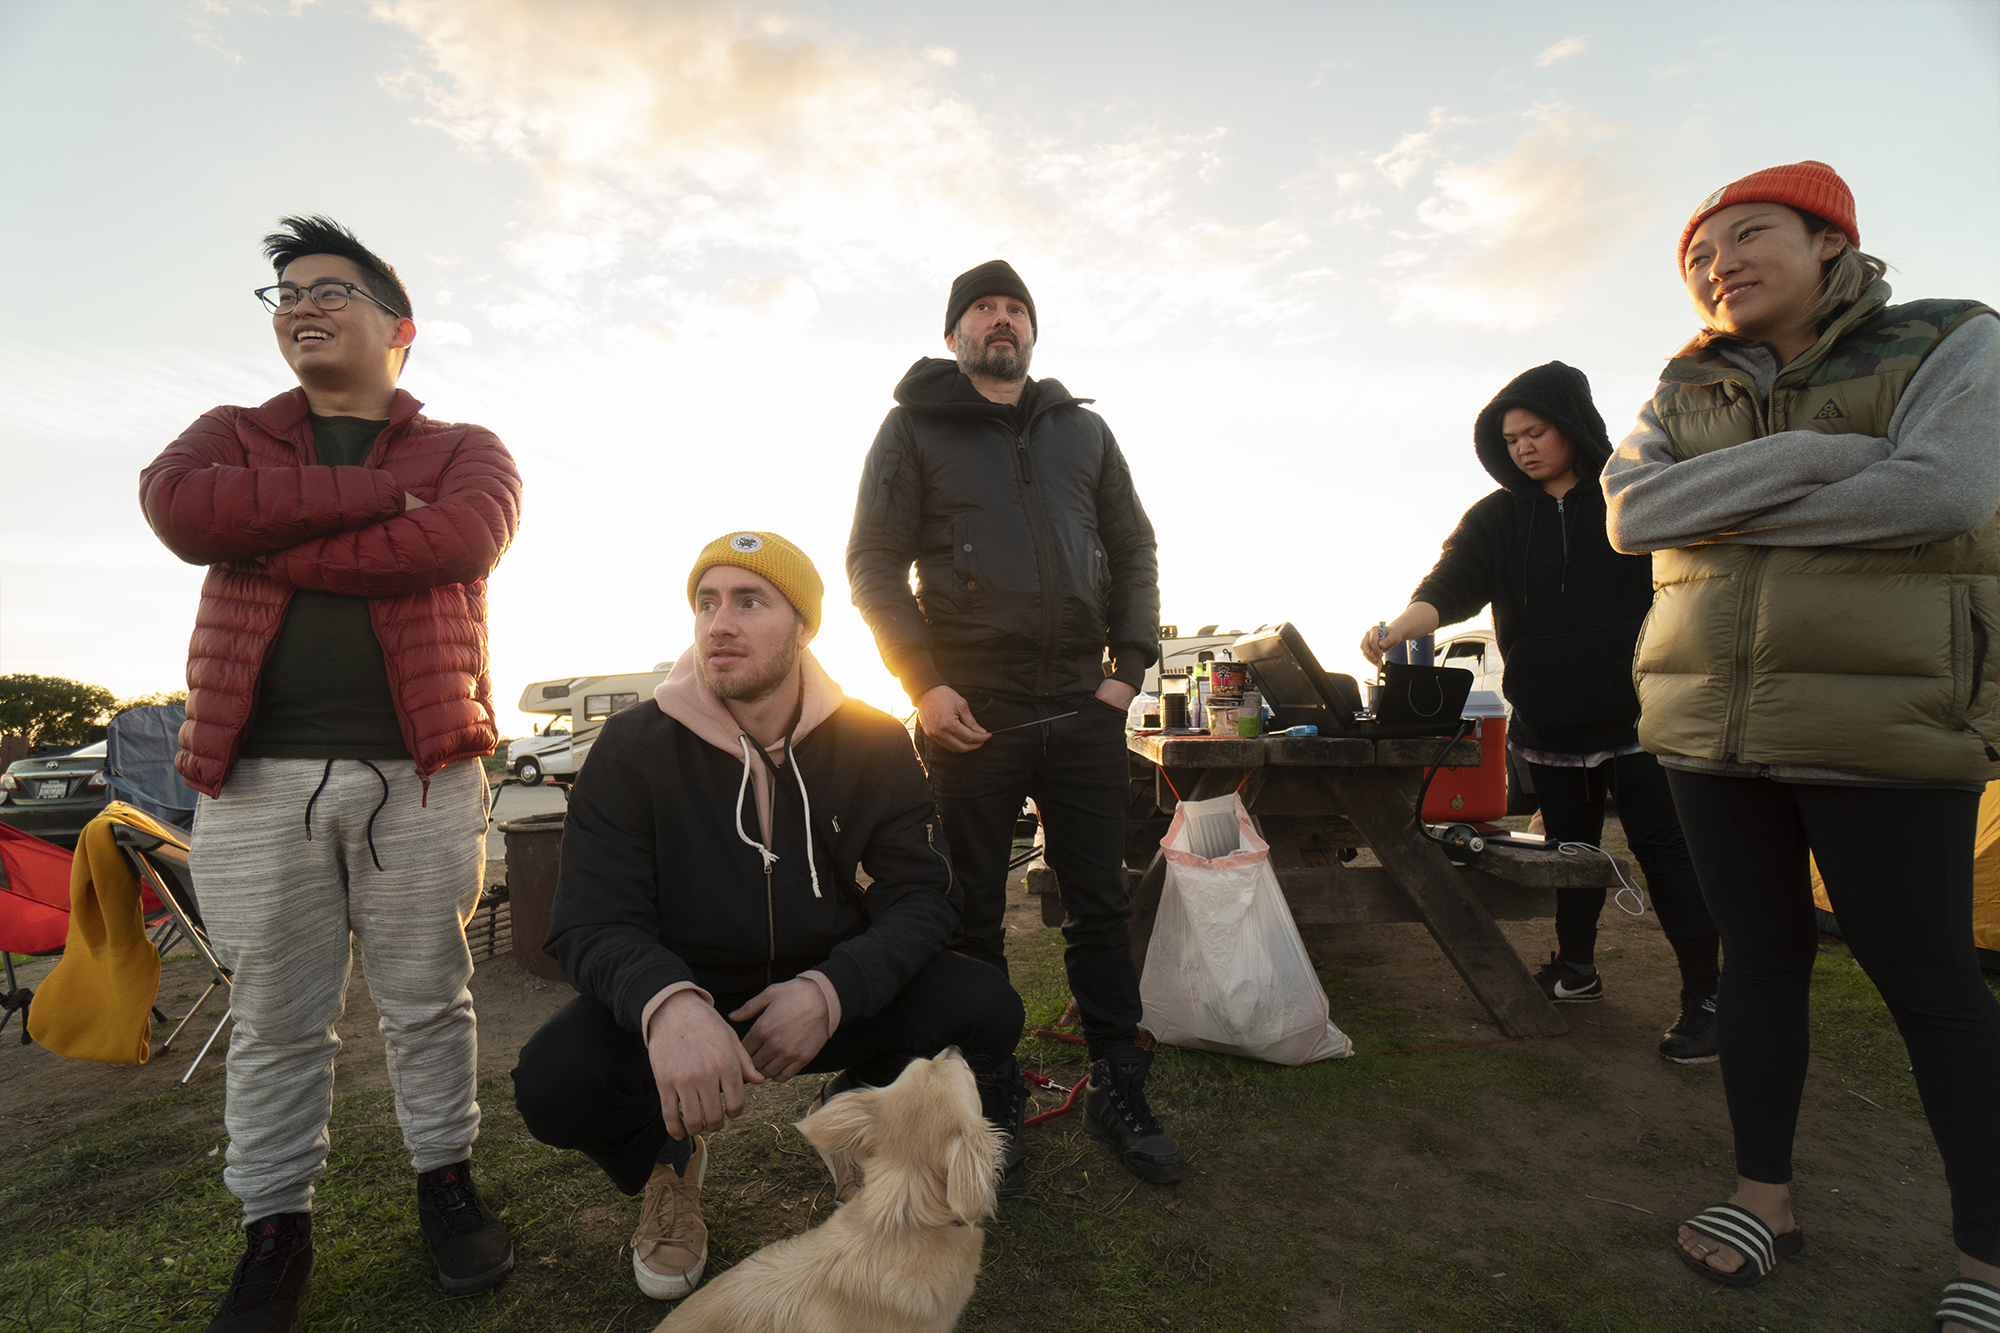 Hobo-Life-hoang-morro-bay-groupphoto-group.jpg